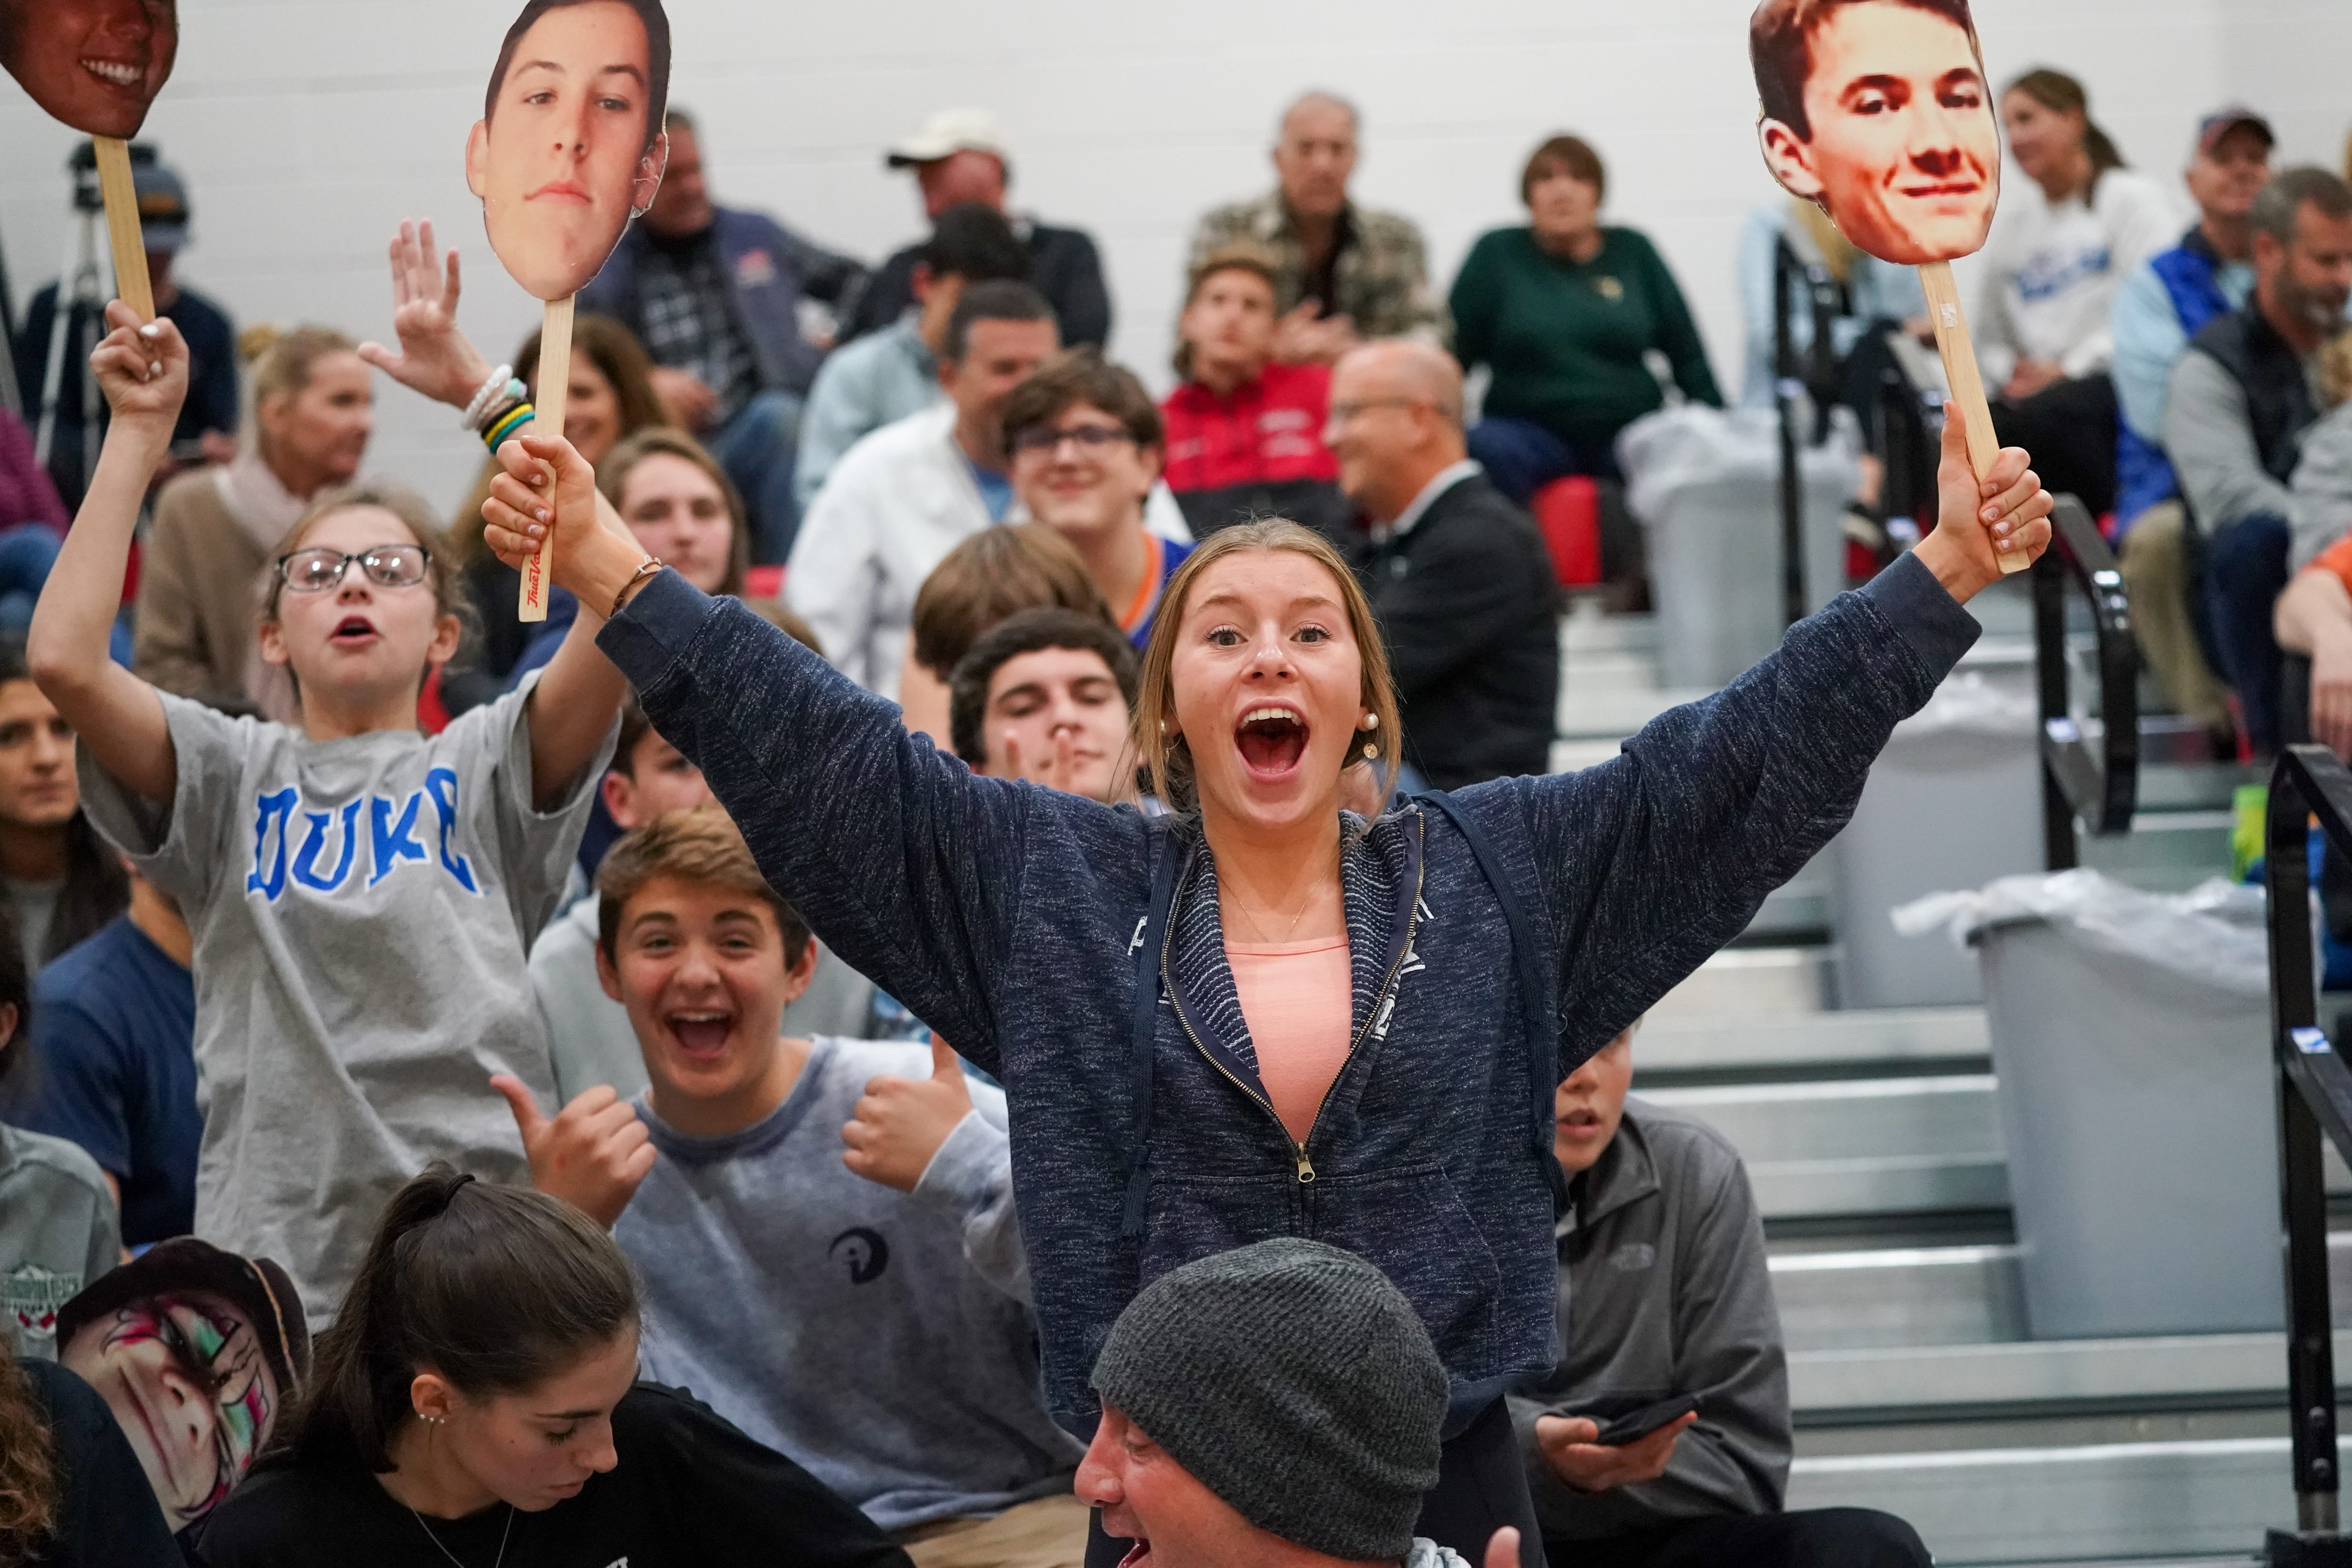 Emma Citarelli was one of the many fans who came out in support for the Westhampton Beach boys volleyball team for Monday's county championship match.